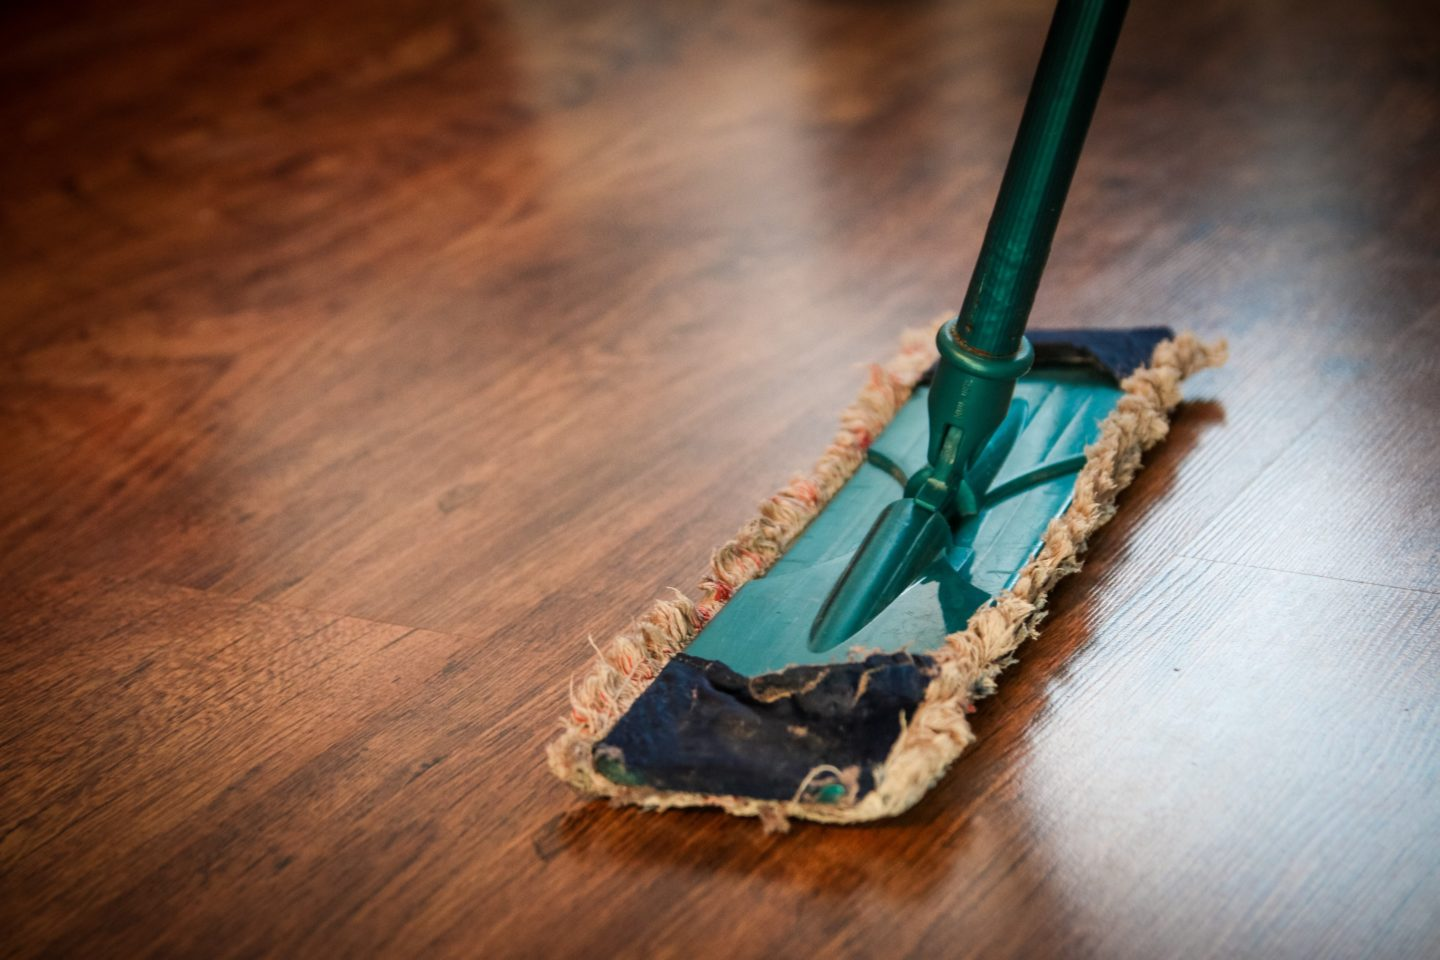 Household Jobs You Finally Have Time For